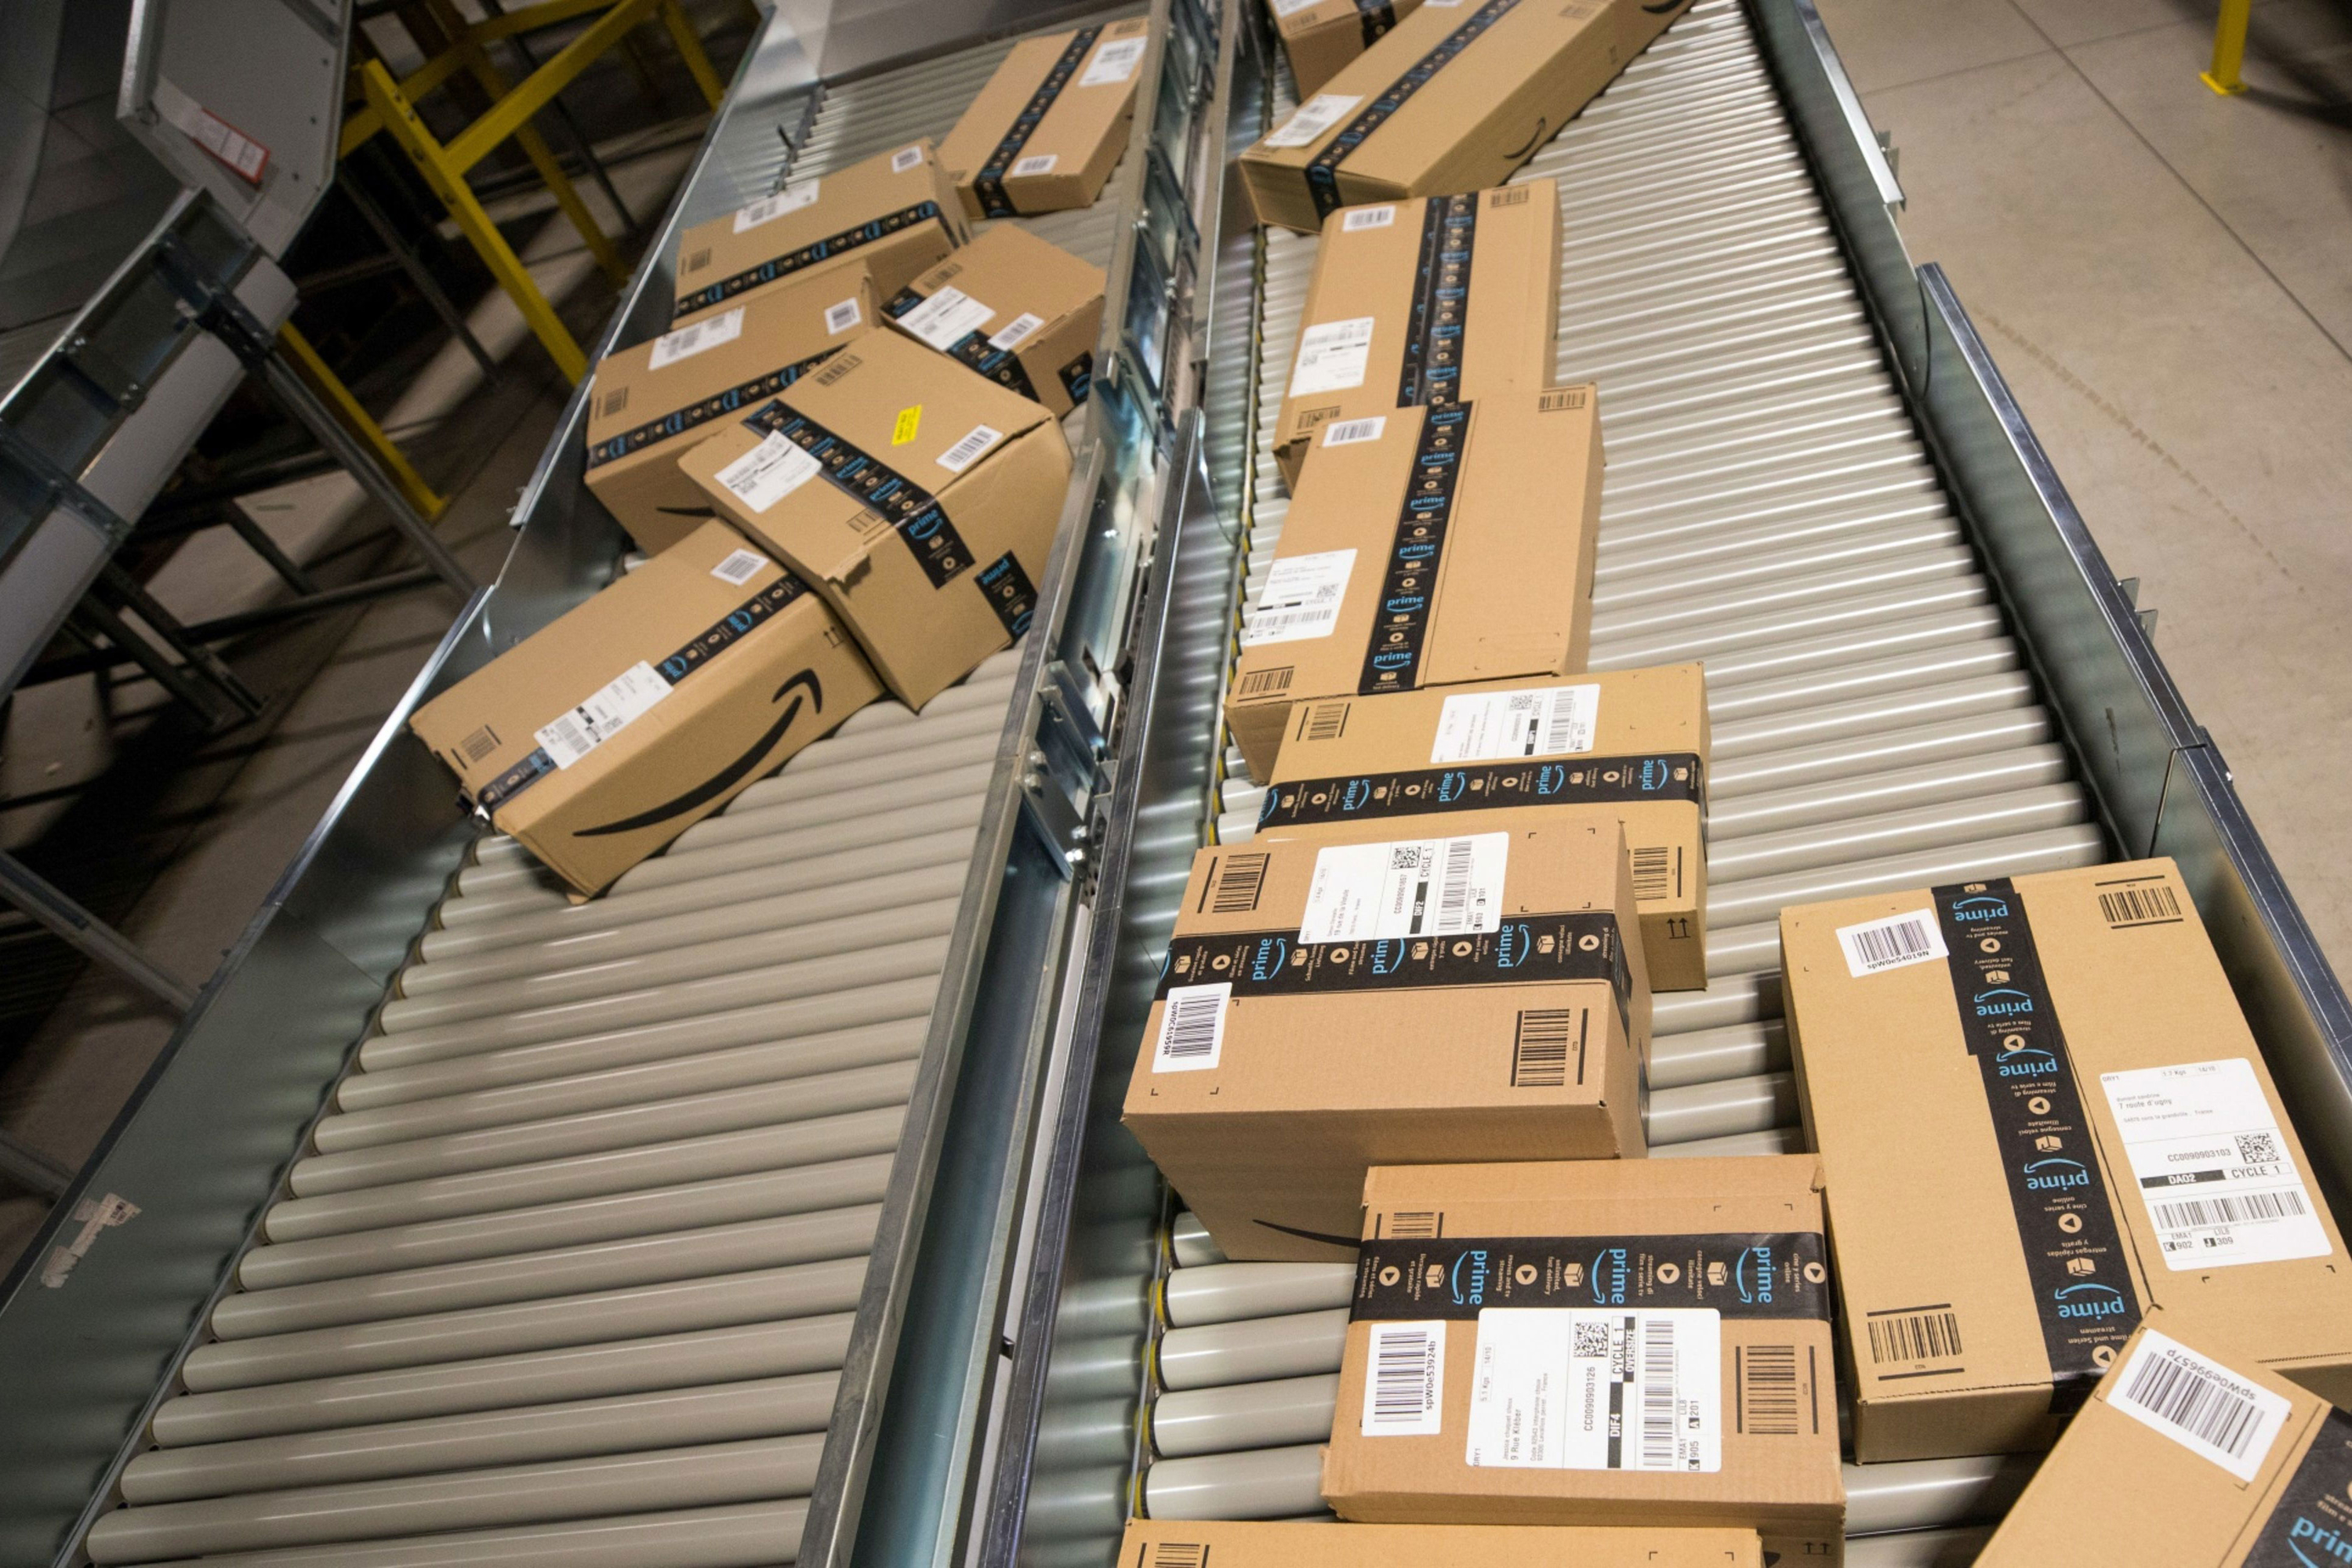 Amazon explored opening home goods, electronics discount stores